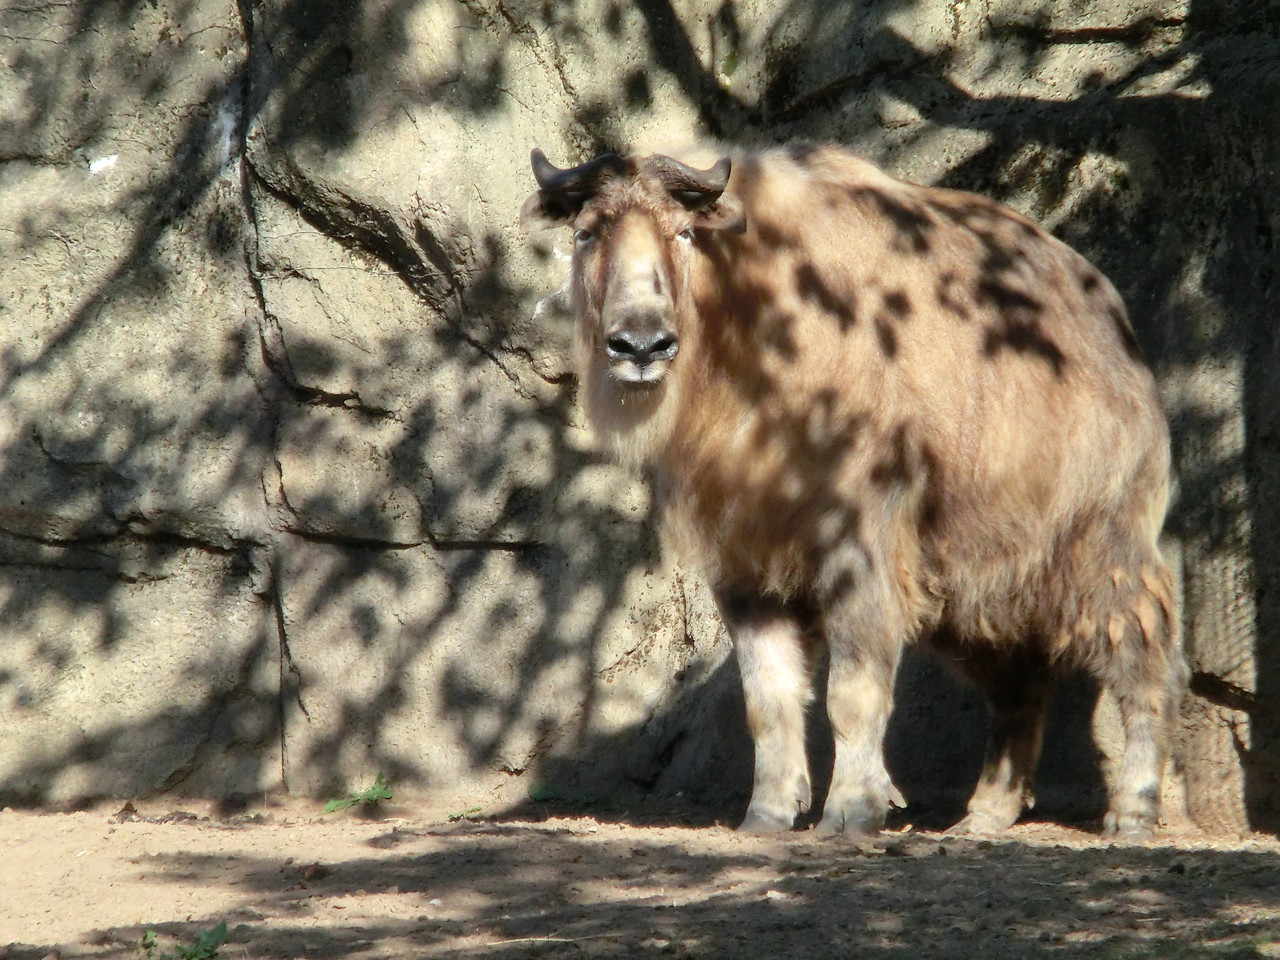 Sichuan Takin - Lincoln Park Zoo - Chicago